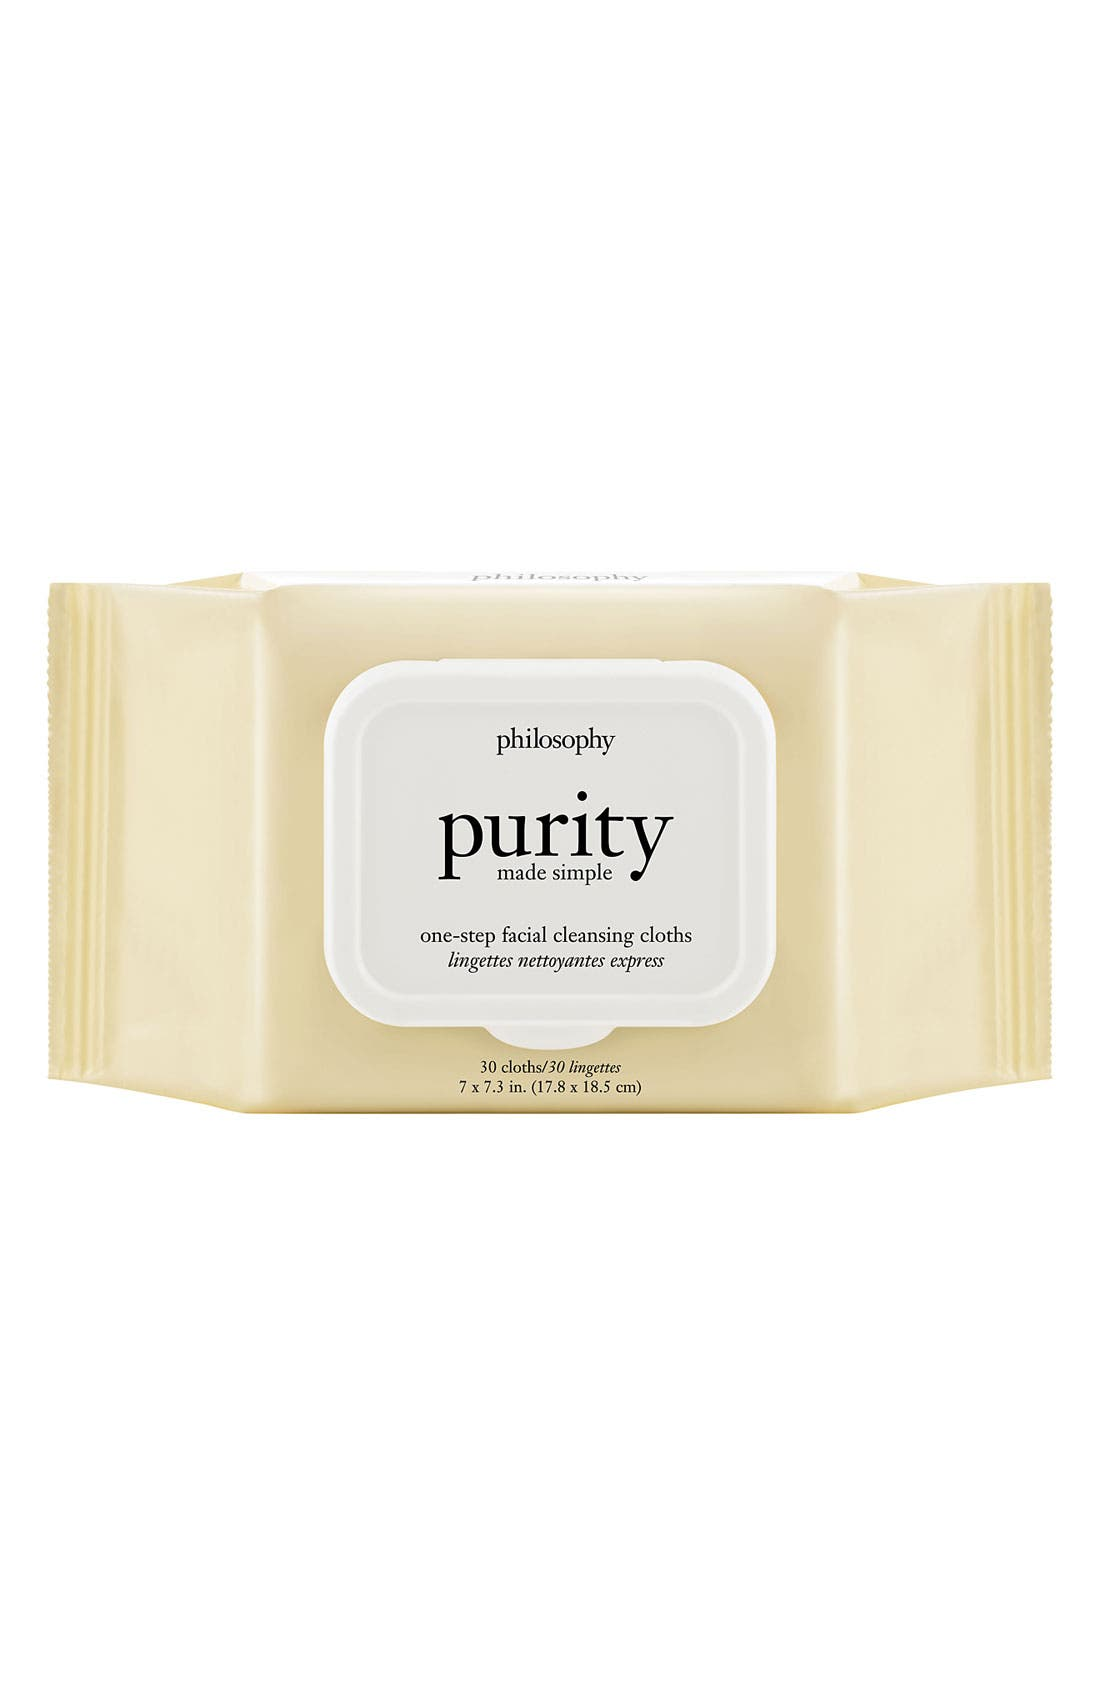 philosophy 'purity made simple' one-step facial cleansing cloths